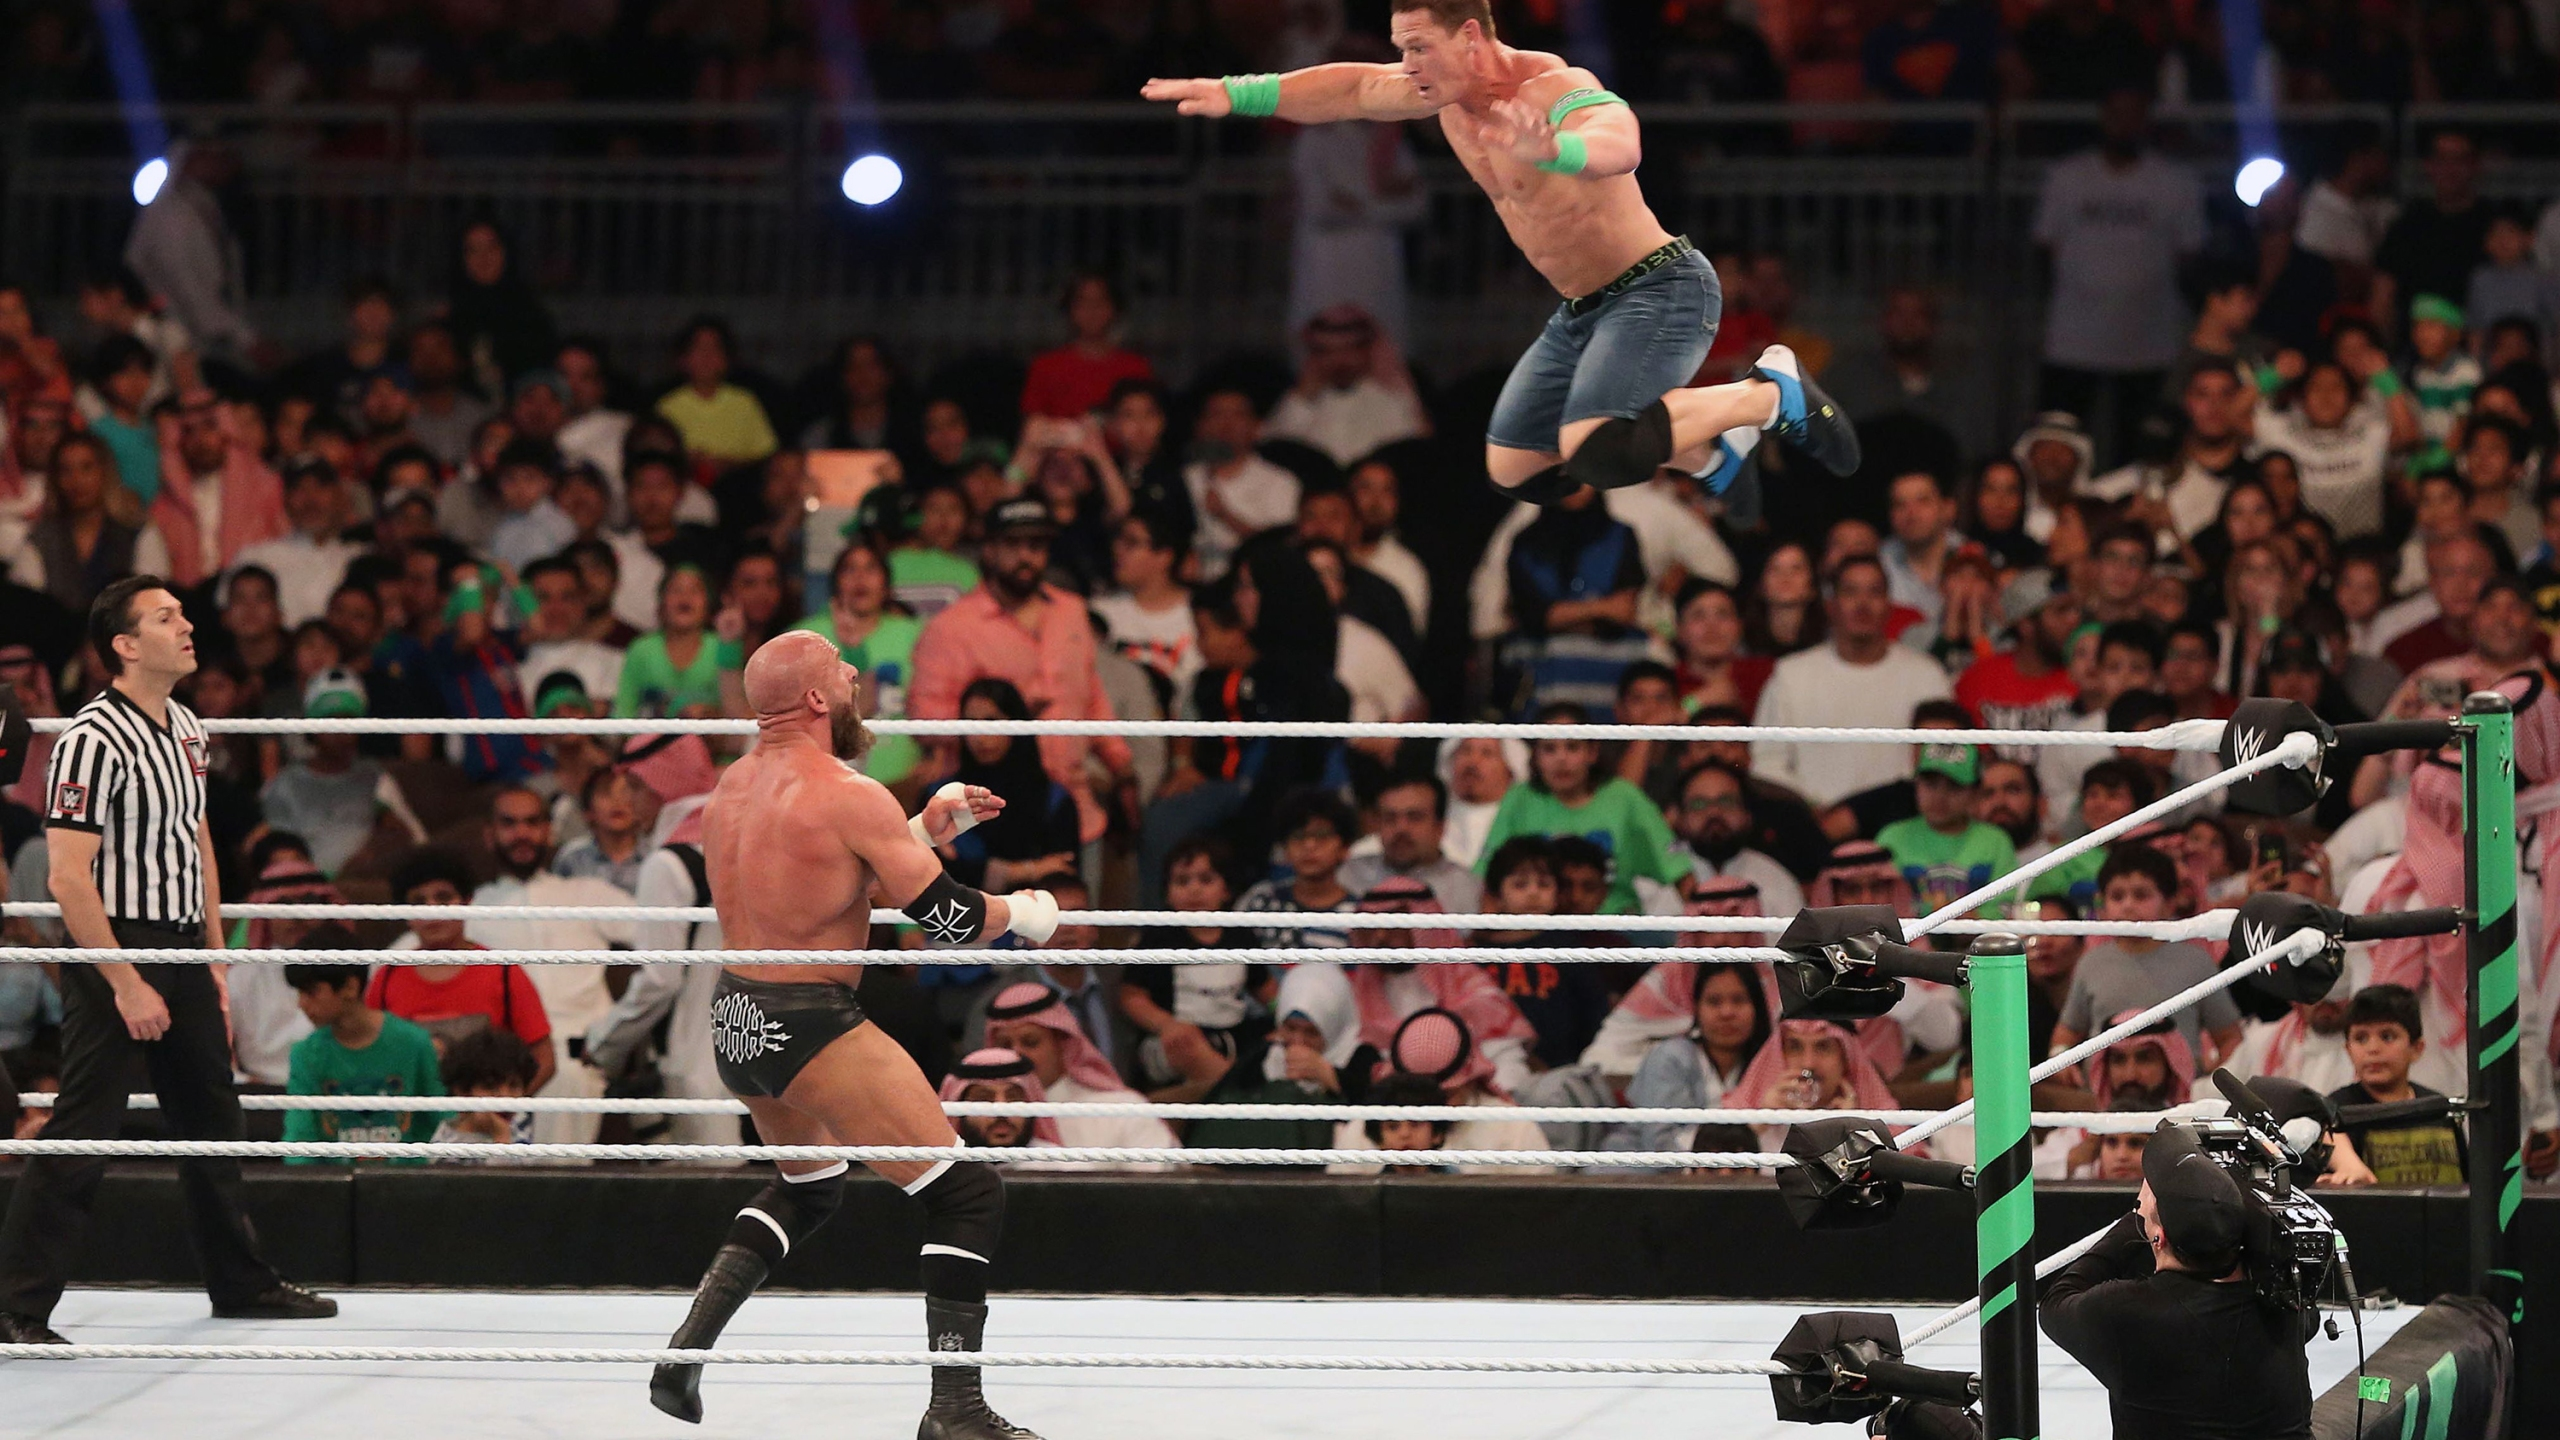 World Wrestling Entertainment resumed live televised shows on Monday after weeks of taped matches, including their biggest event of the year, WrestleMania. (Stringer/AFP/Getty Images via CNN Wire)